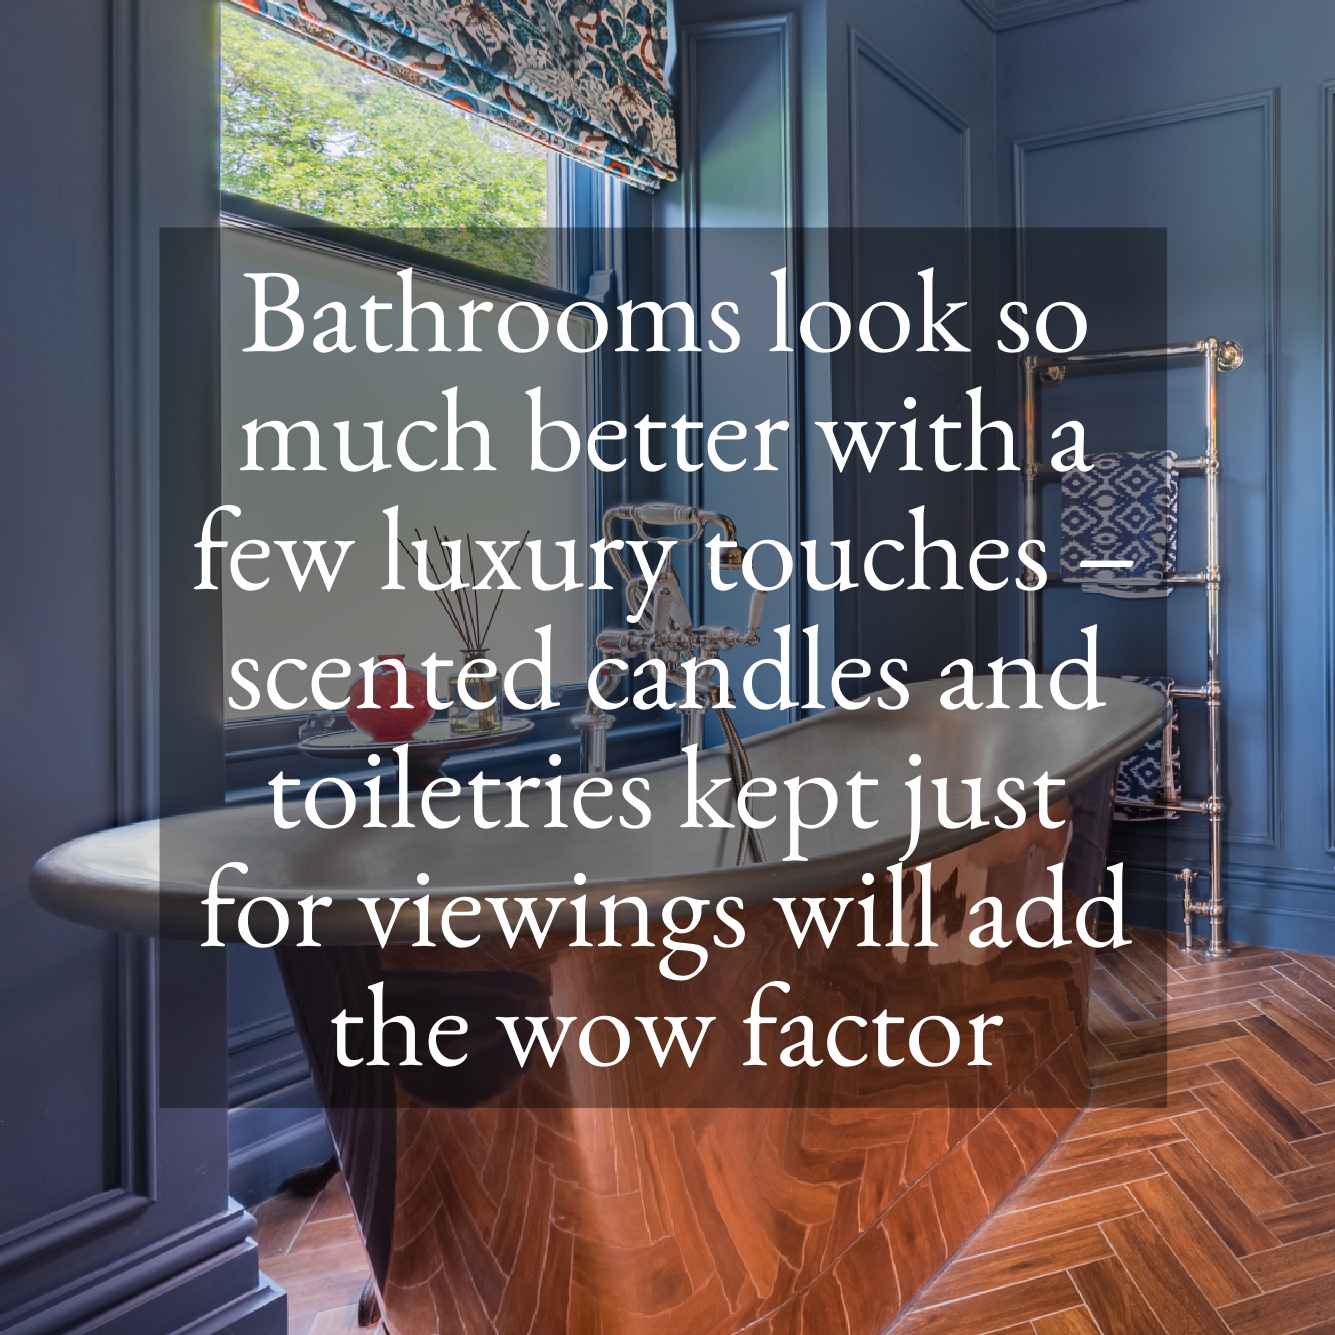 tg8-bathrooms-look-so-much-better